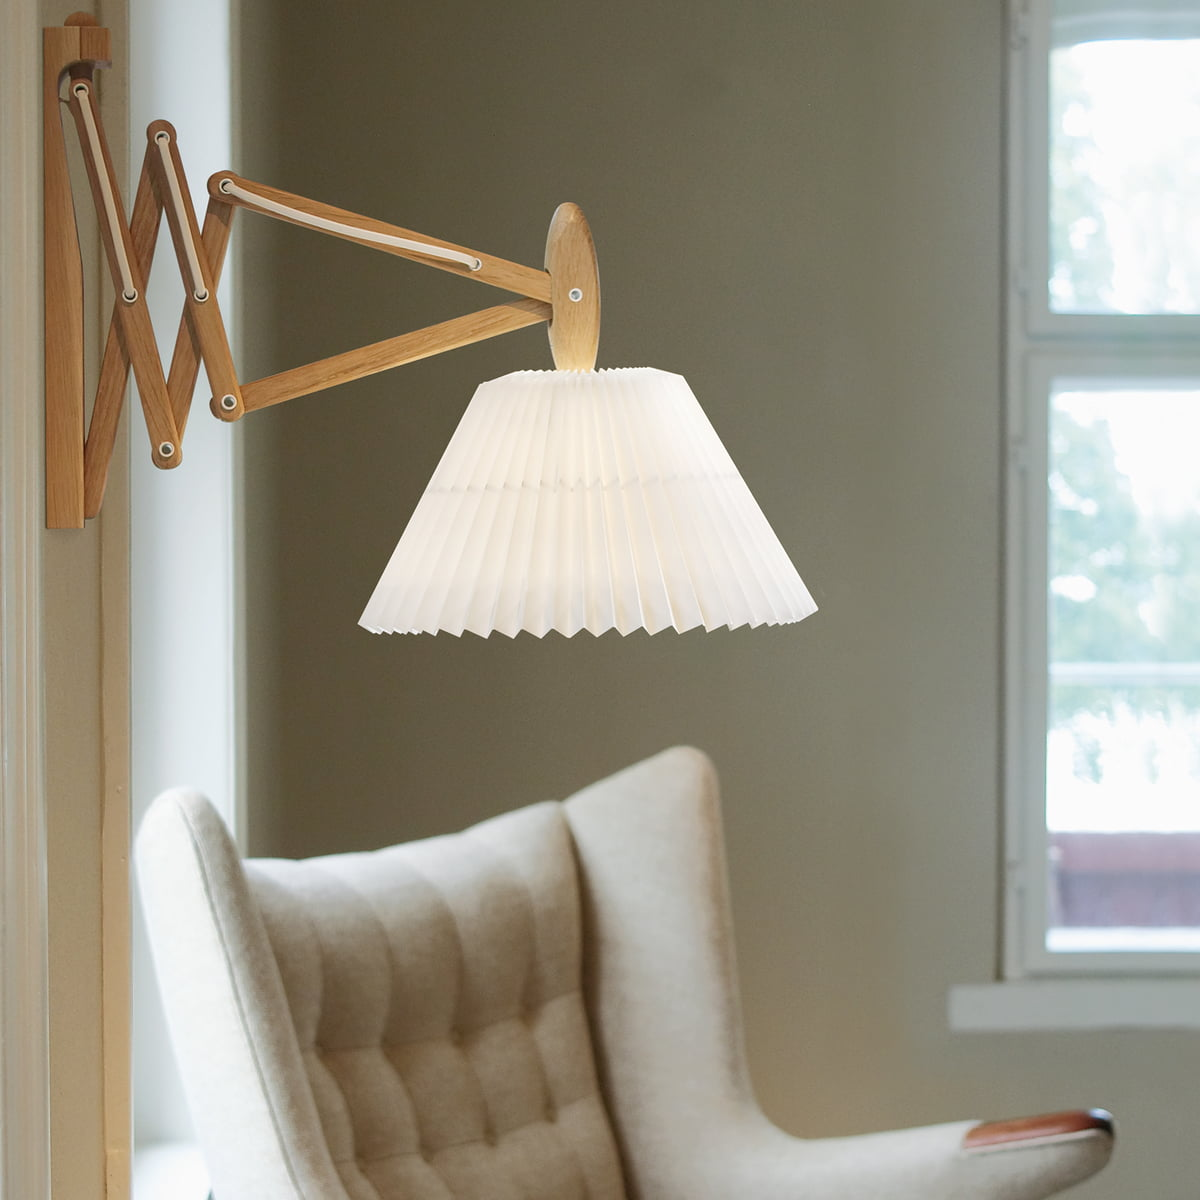 Buy the Sax Lamp 334 from Le Klint in the Connox Shop